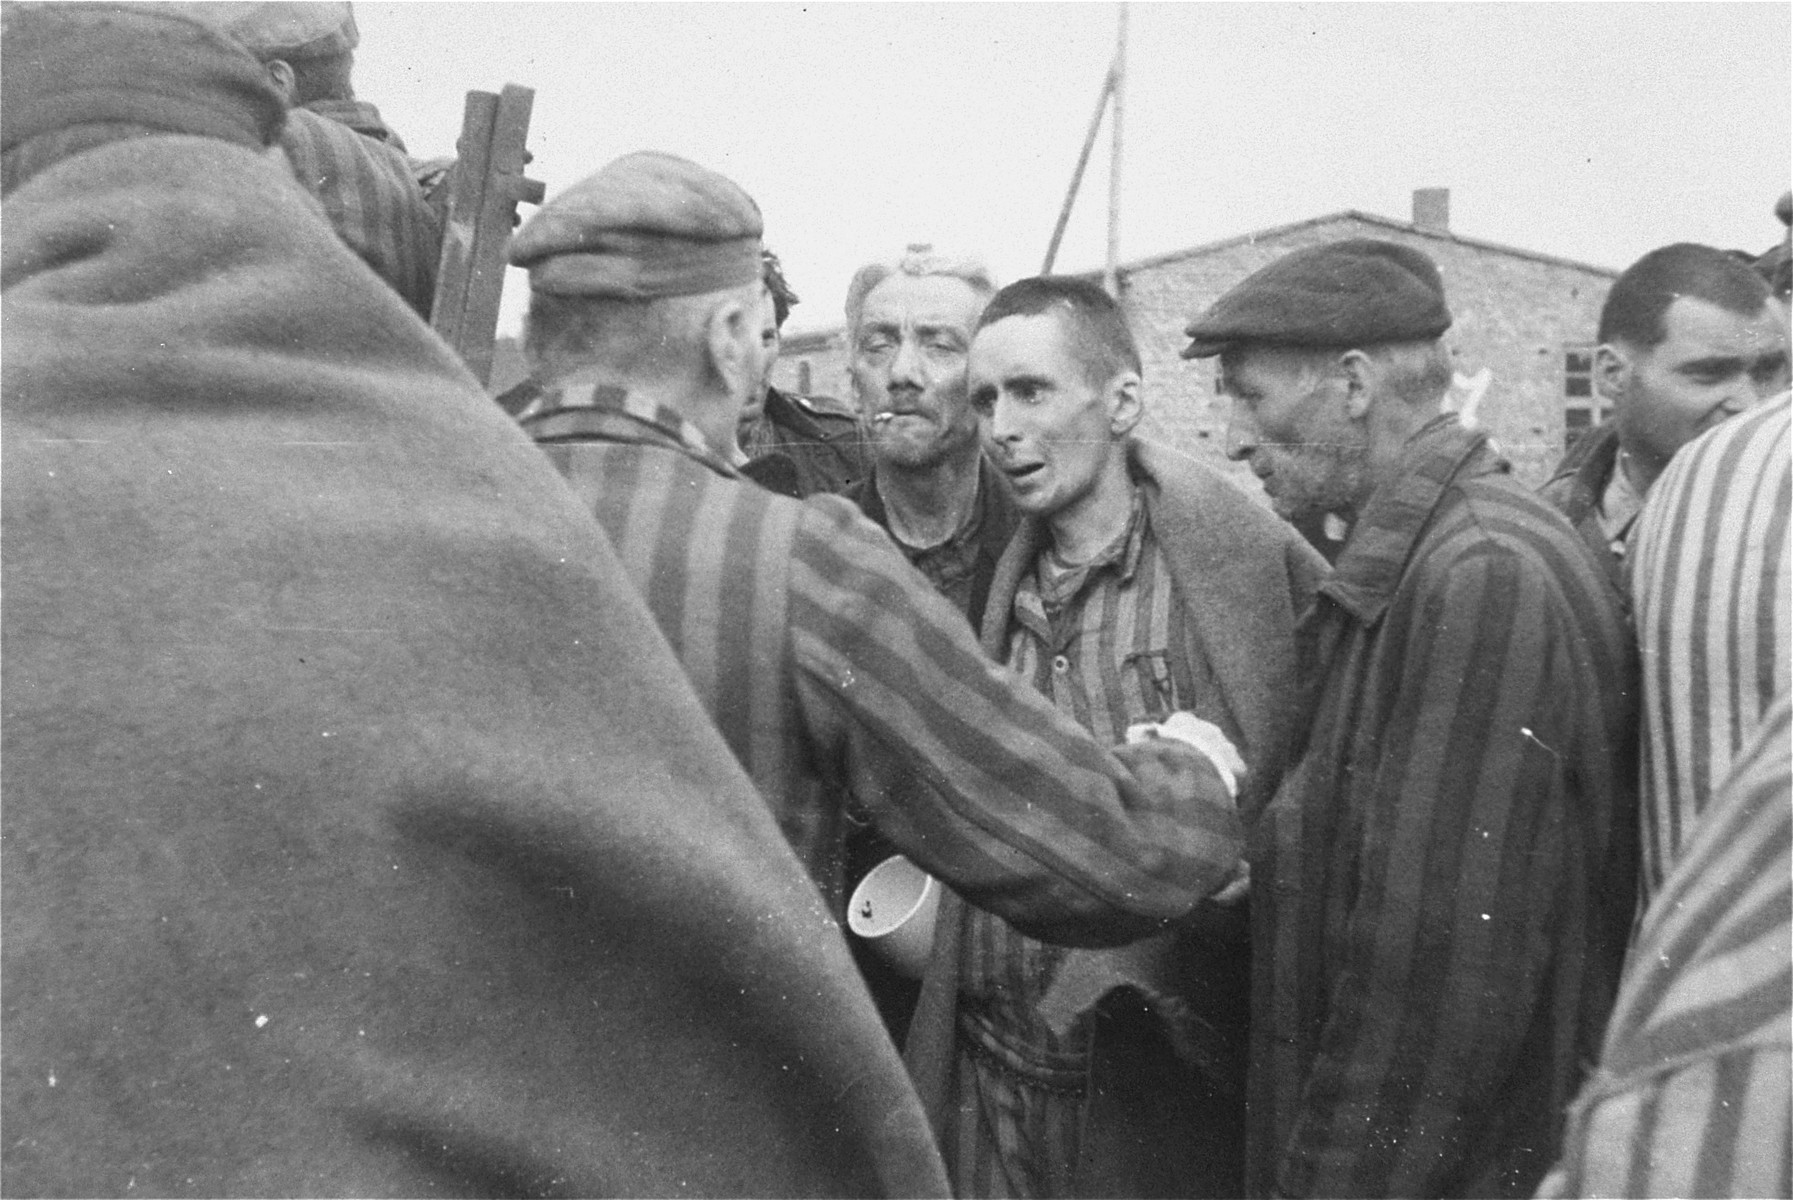 Survivors in Woebbelin board trucks for evacuation from the camp to an American field hospital for medical attention.